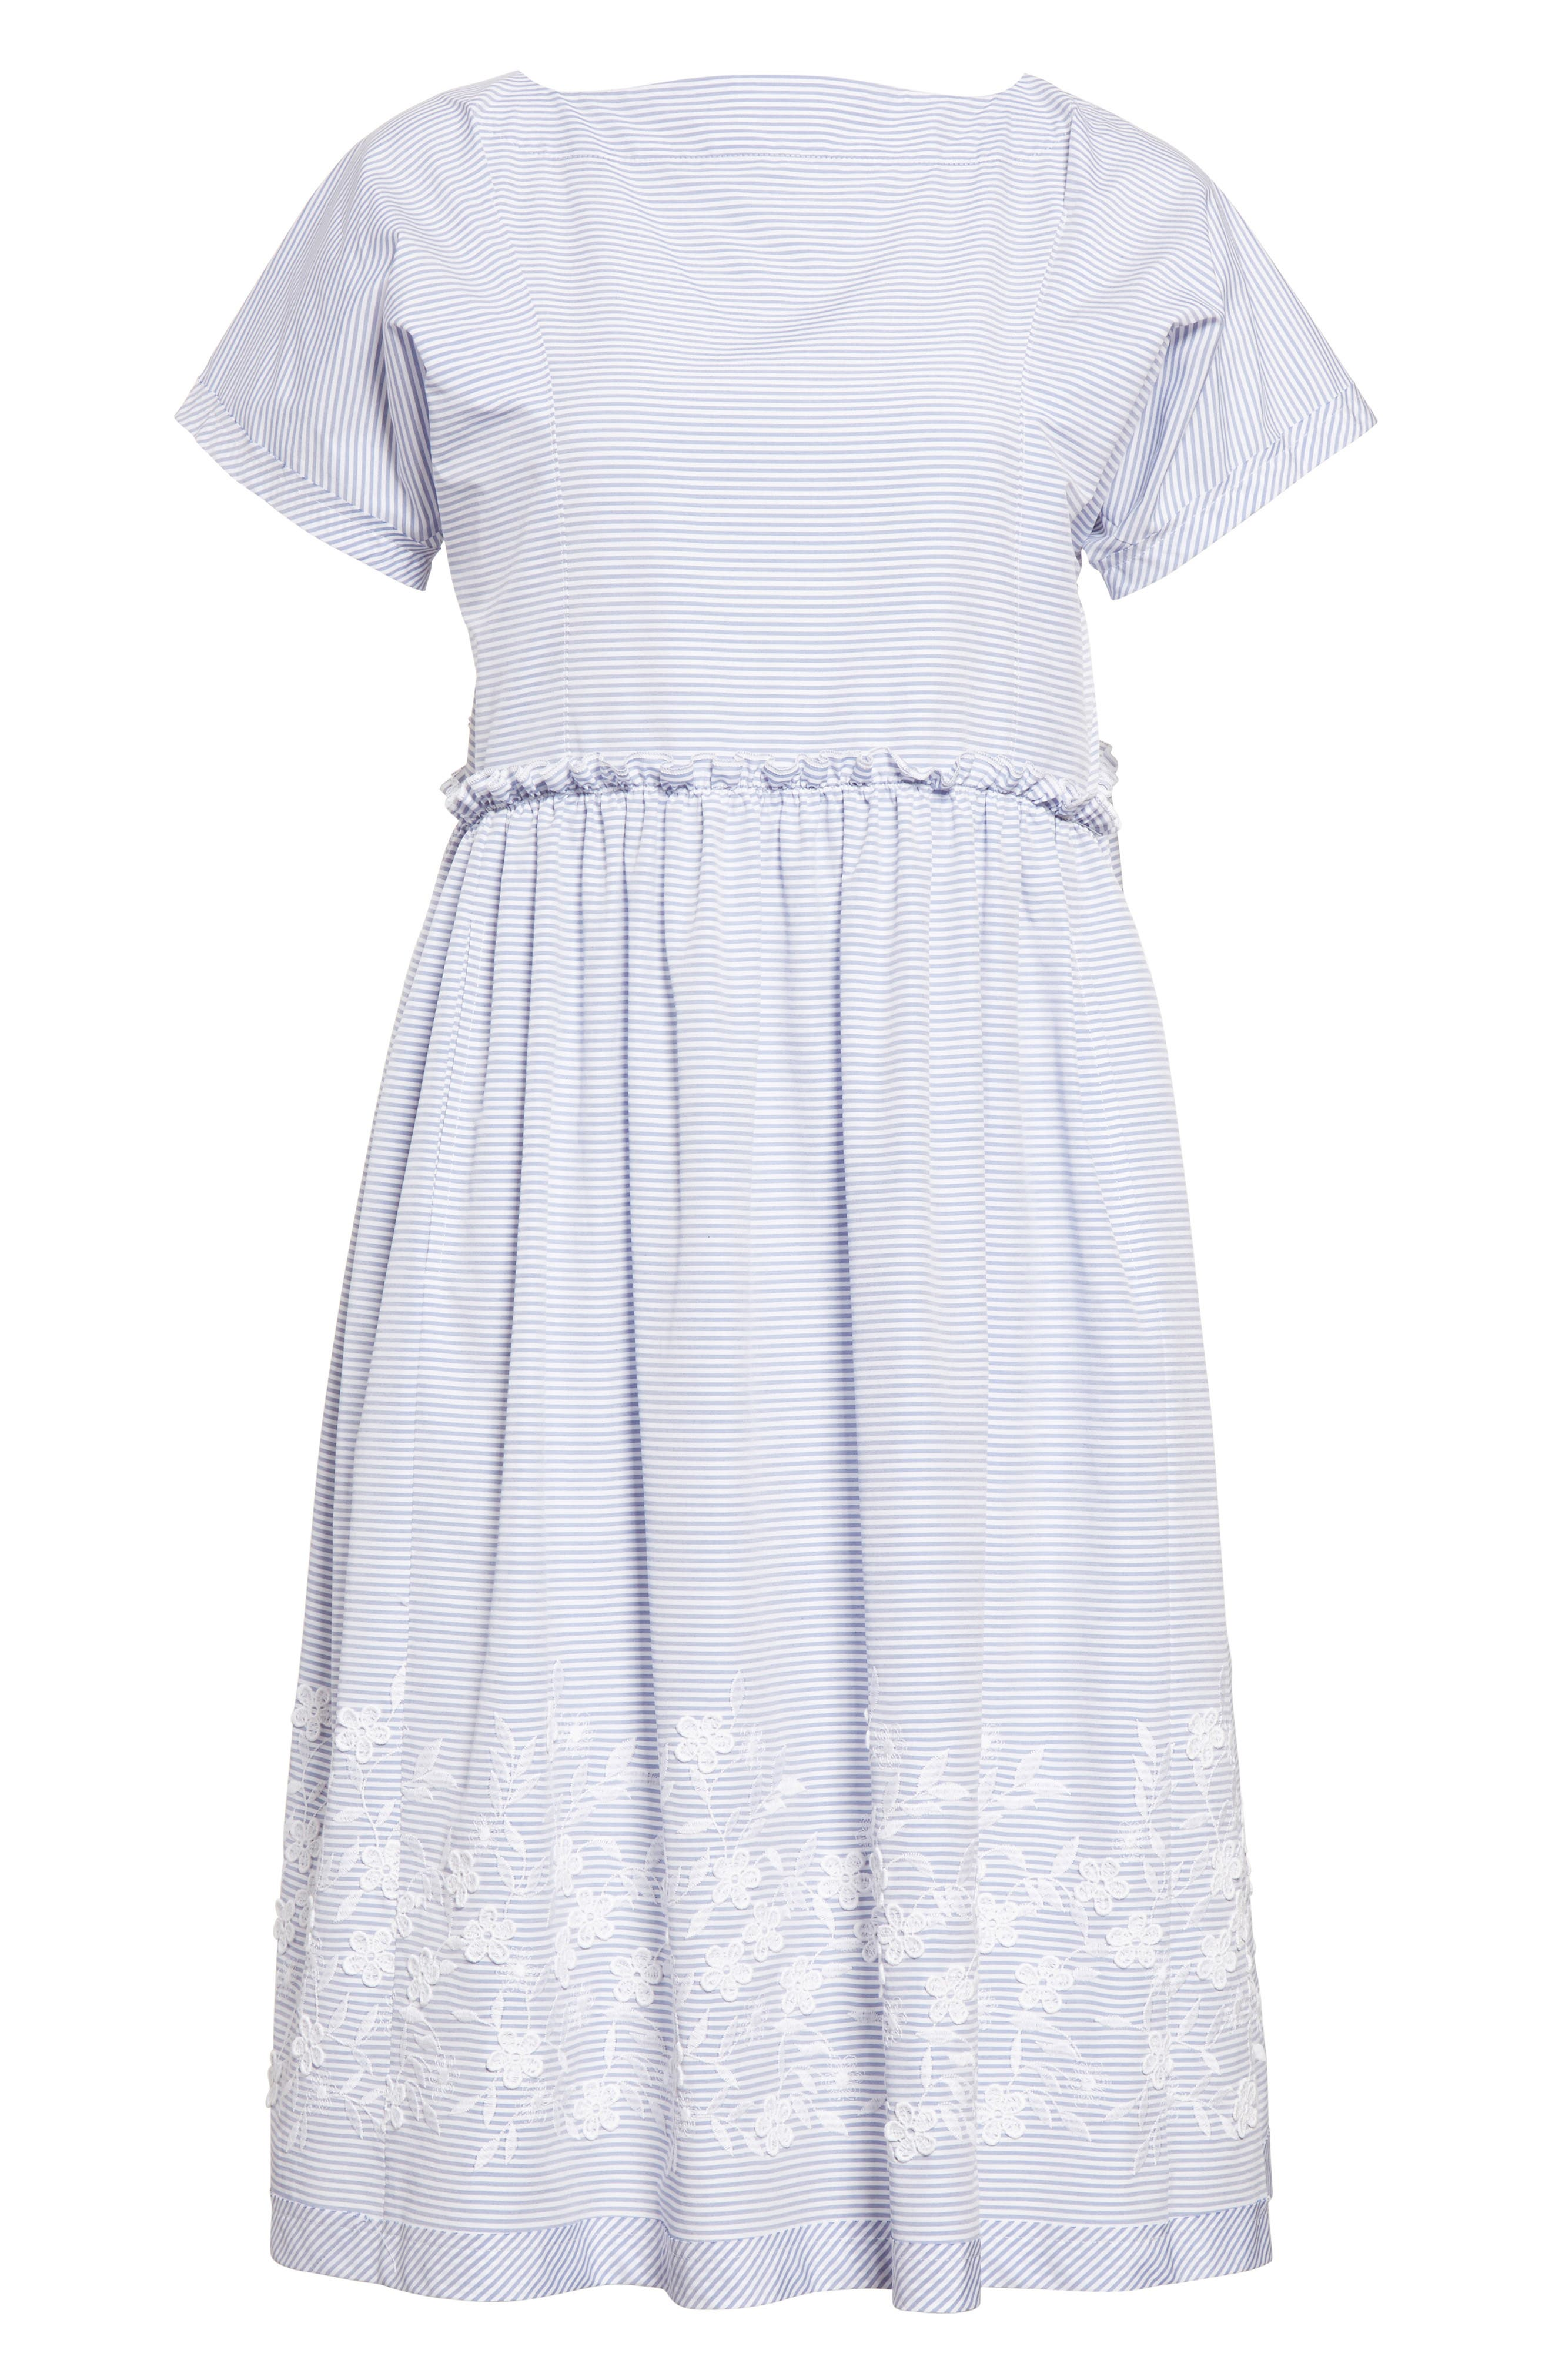 Floral Embroidered Stripe Shift Dress,                             Alternate thumbnail 4, color,                             Wide Stripe